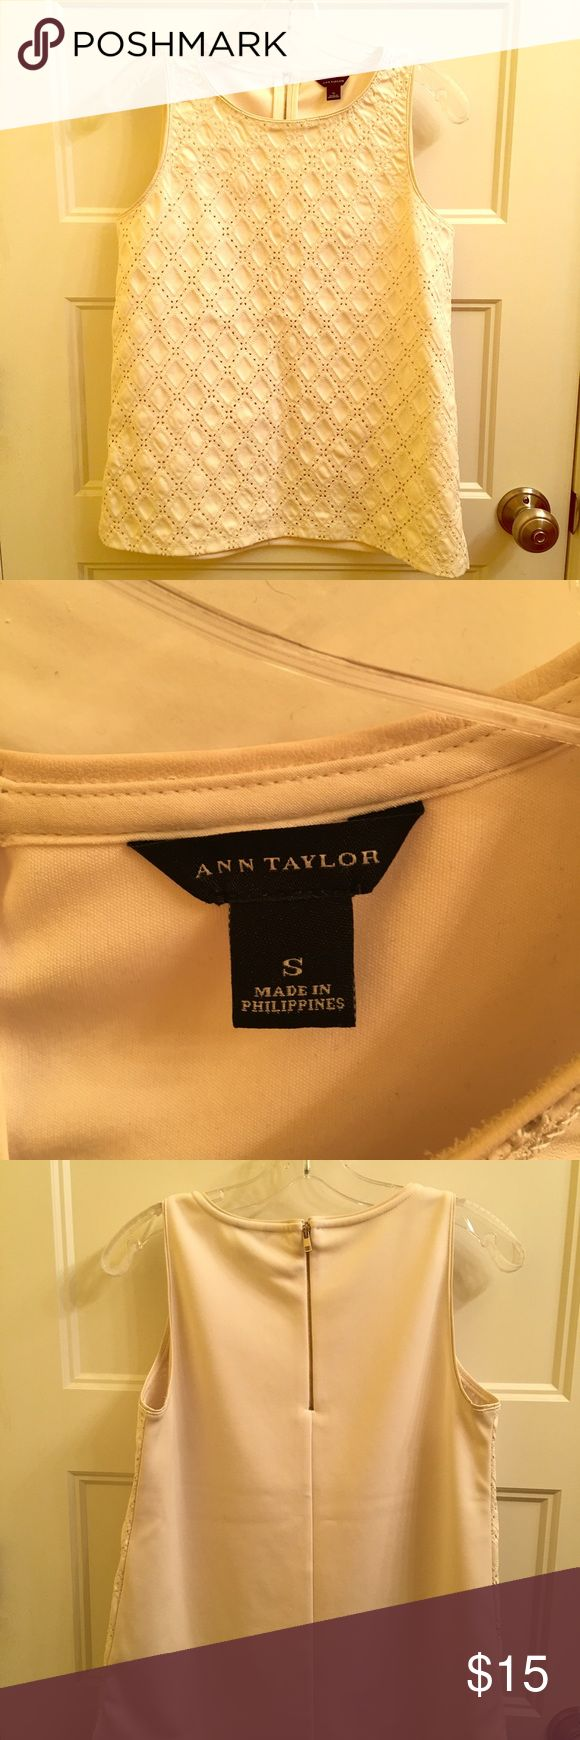 Leather-look sleeveless shell top from Ann Taylor This beauty falls somewhere between wardrobe staple and statement piece! Leather-look shell in versatile off white, looks just as classy as you'd expect from Ann Taylor. The back features a zipper accent. Great quality top! Ann Taylor Tops